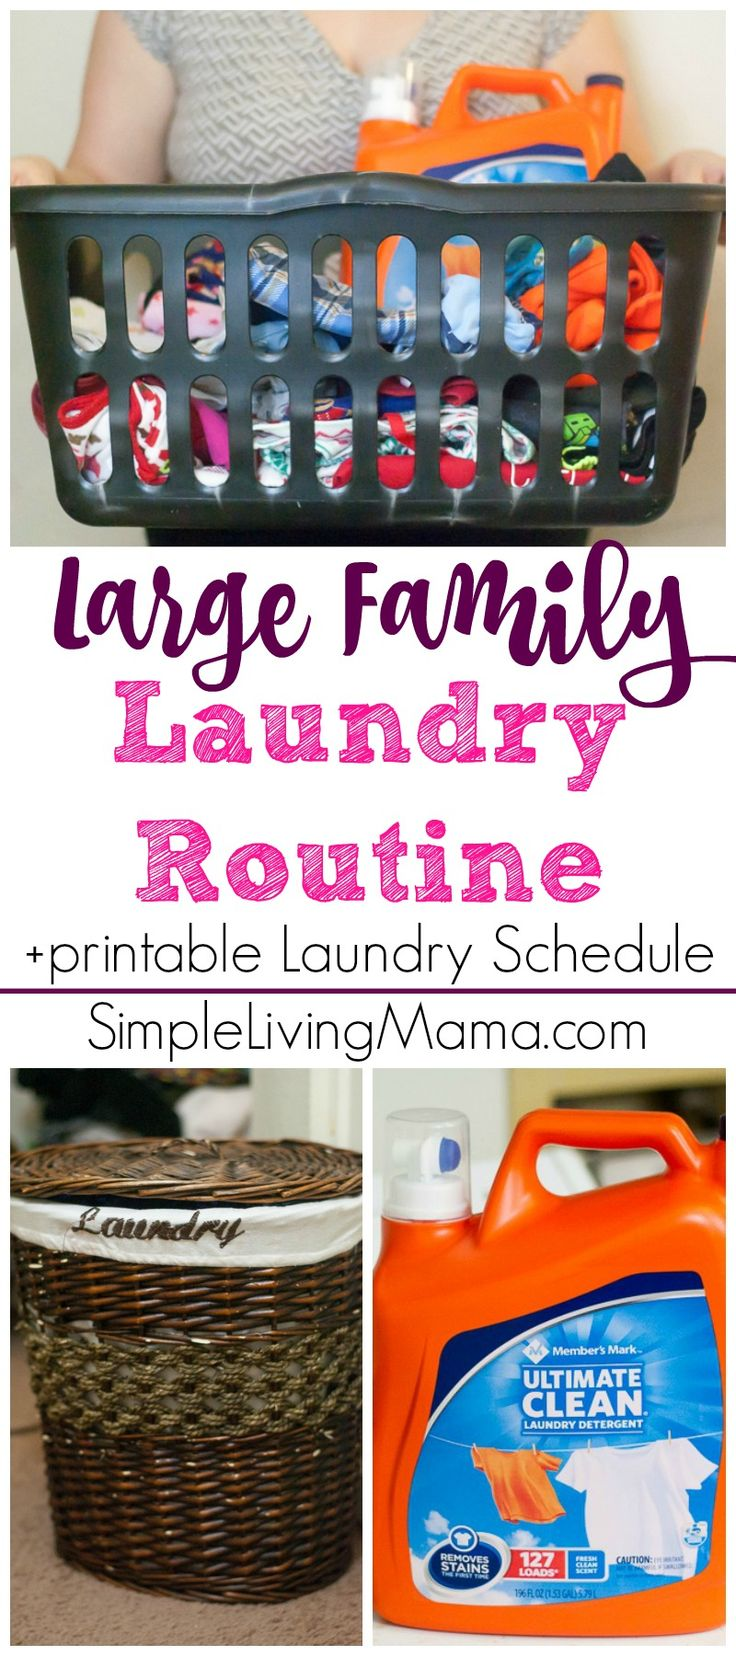 If you are struggling with the laundry, this large family laundry routine will help you figure out a routine that works for your family. Snag the free printable laundry schedule for a visual reminder of what to wash every day! #ad #membersmarkdetergent